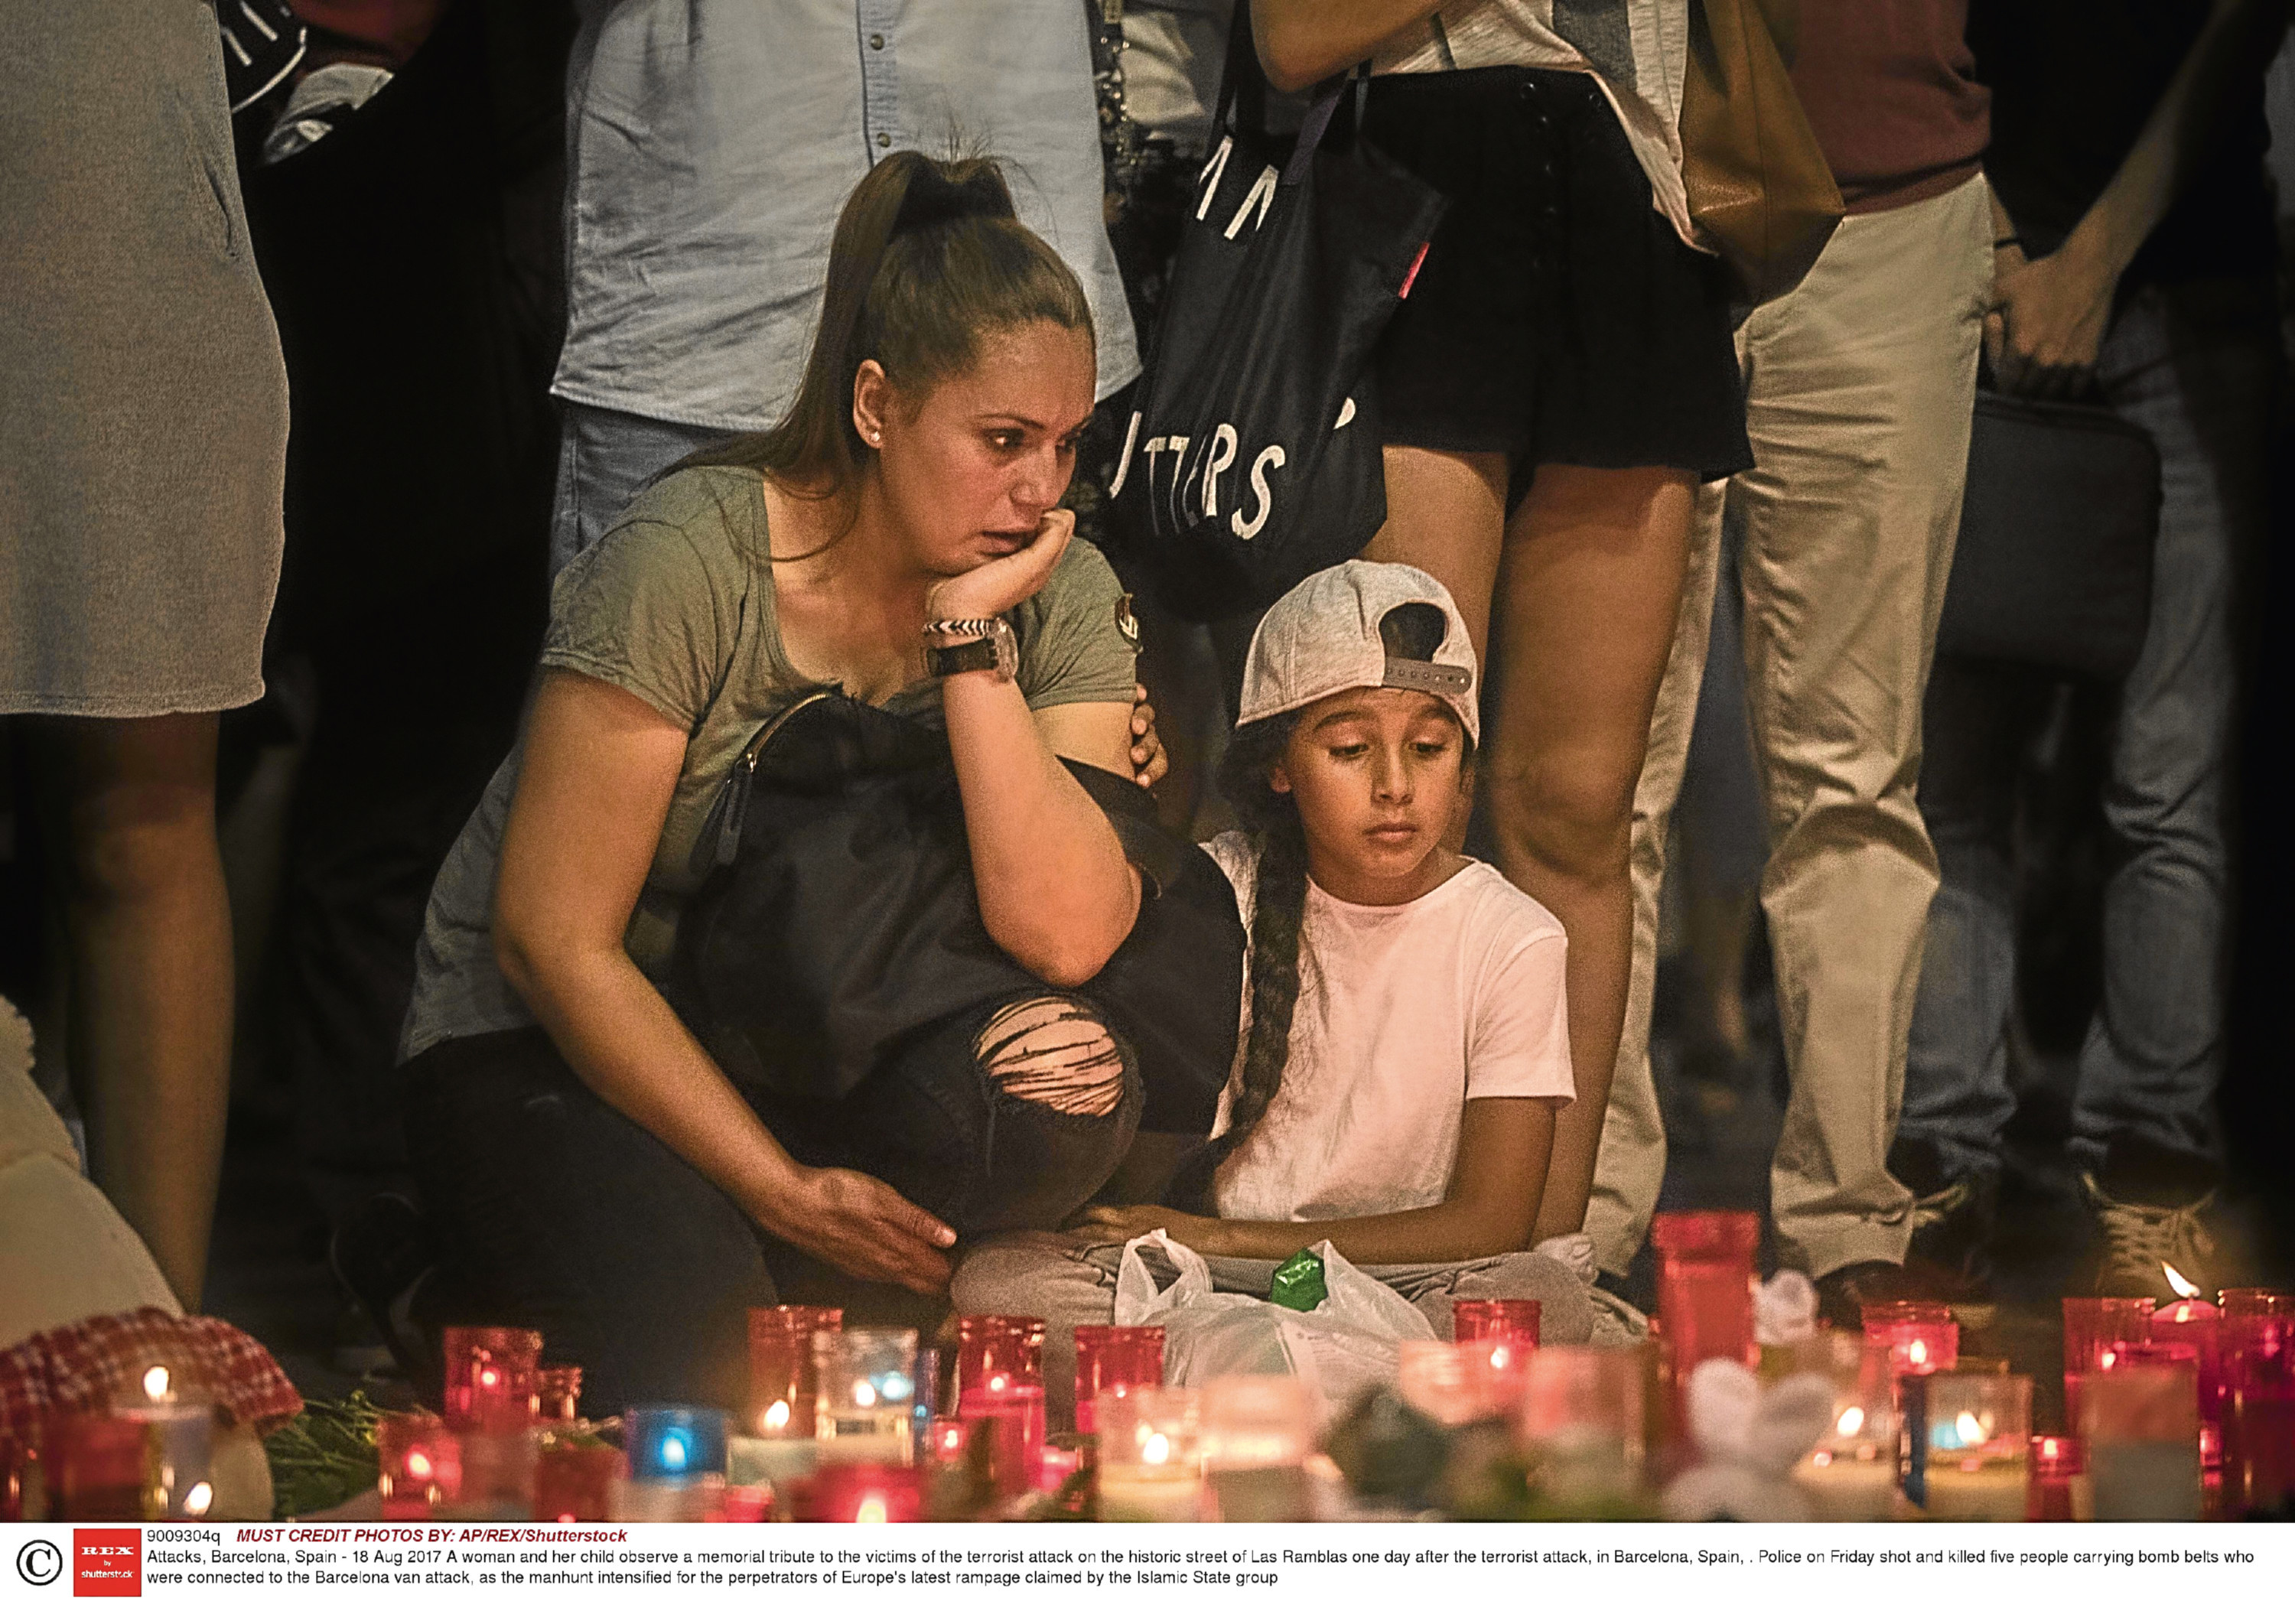 A woman and her child observe a memorial tribute to the victims of the terrorist attack, in Barcelona (AP/REX/Shutterstock)